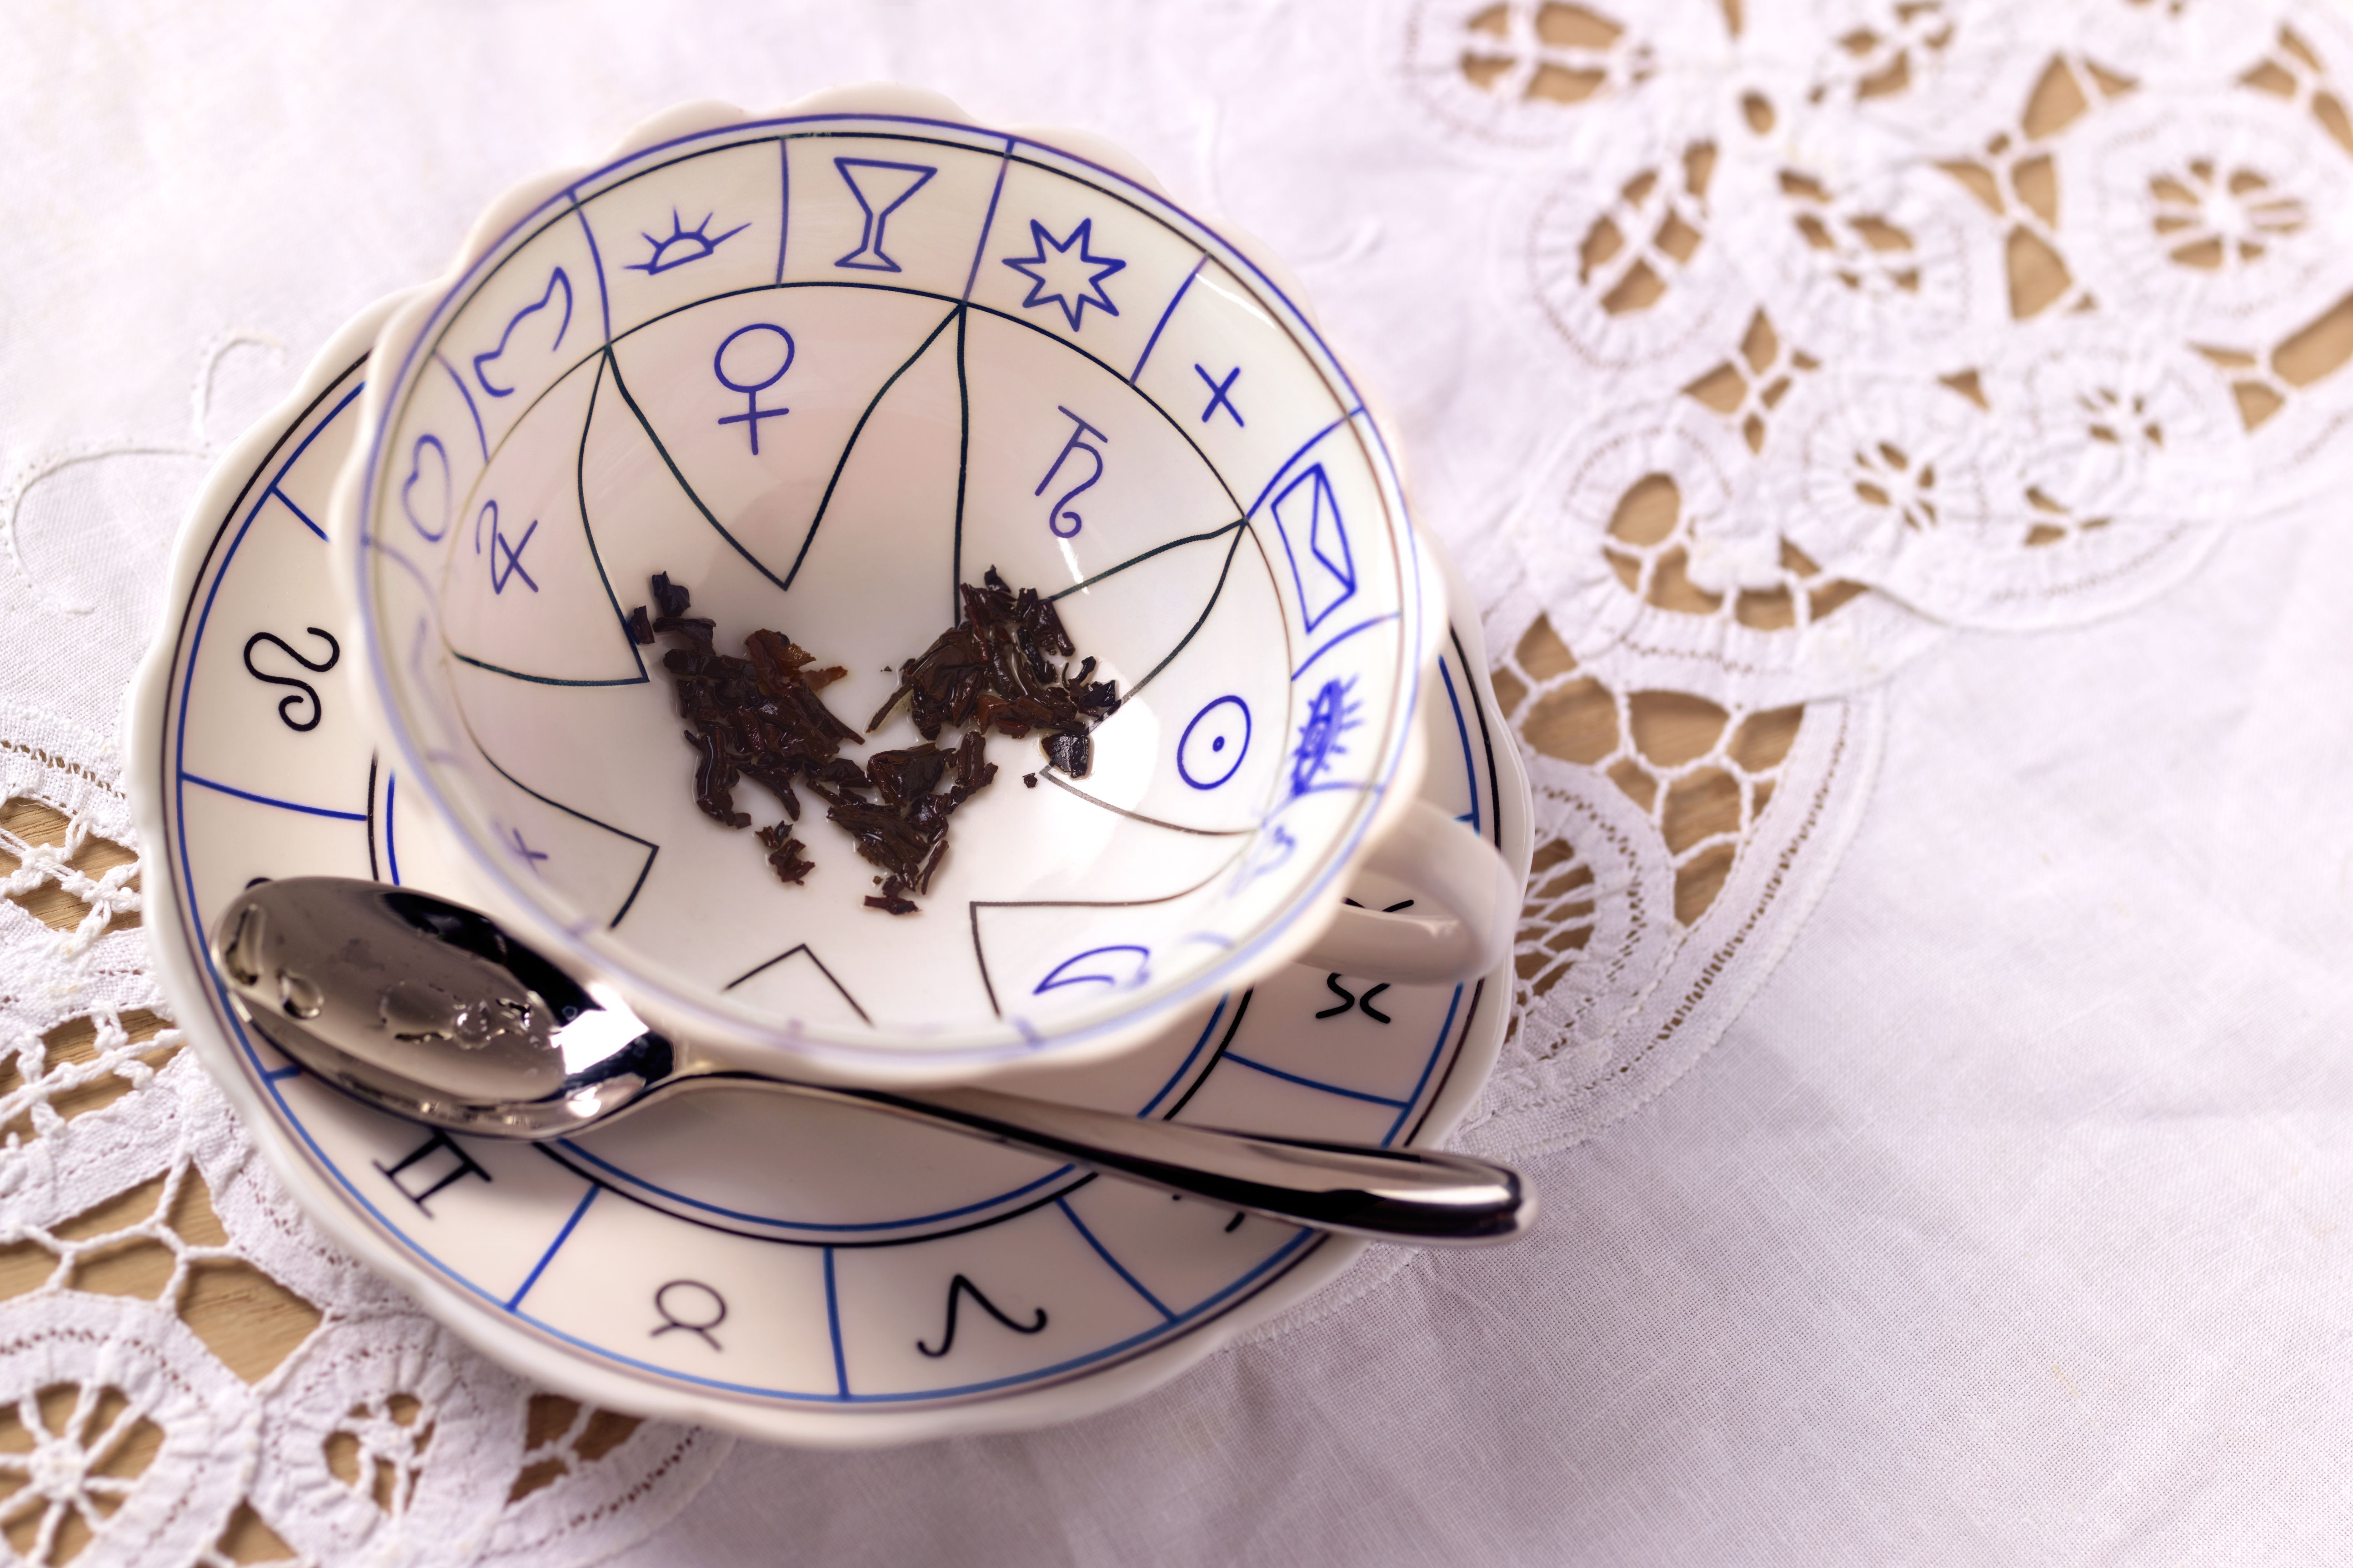 Tasseography symbols for reading coffee or tea leaves biocorpaavc Choice Image